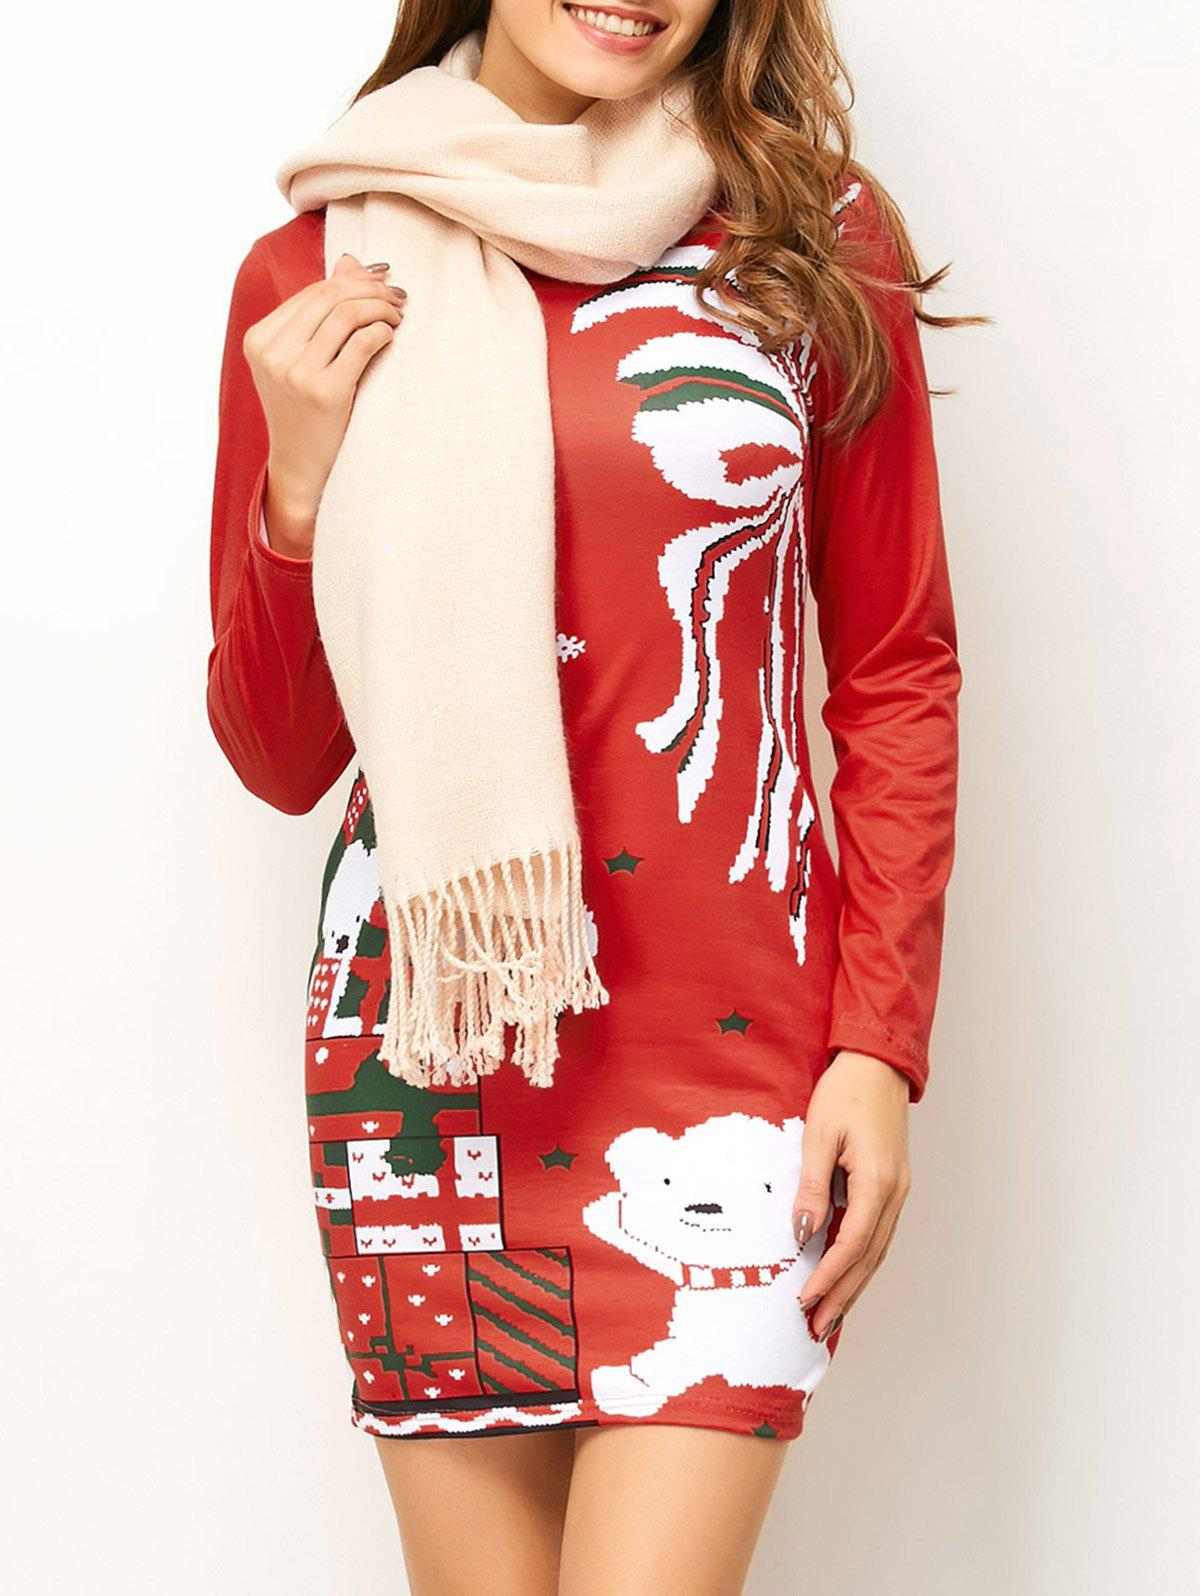 Christmas Tree Pattern Mini Long Sleeve DressWOMEN<br><br>Size: L; Color: RED; Style: Brief; Material: Cotton,Polyester; Silhouette: Sheath; Dresses Length: Mini; Neckline: Round Collar; Sleeve Length: Long Sleeves; Pattern Type: Print; With Belt: No; Season: Fall,Winter; Weight: 0.490kg; Package Contents: 1 x Dress;